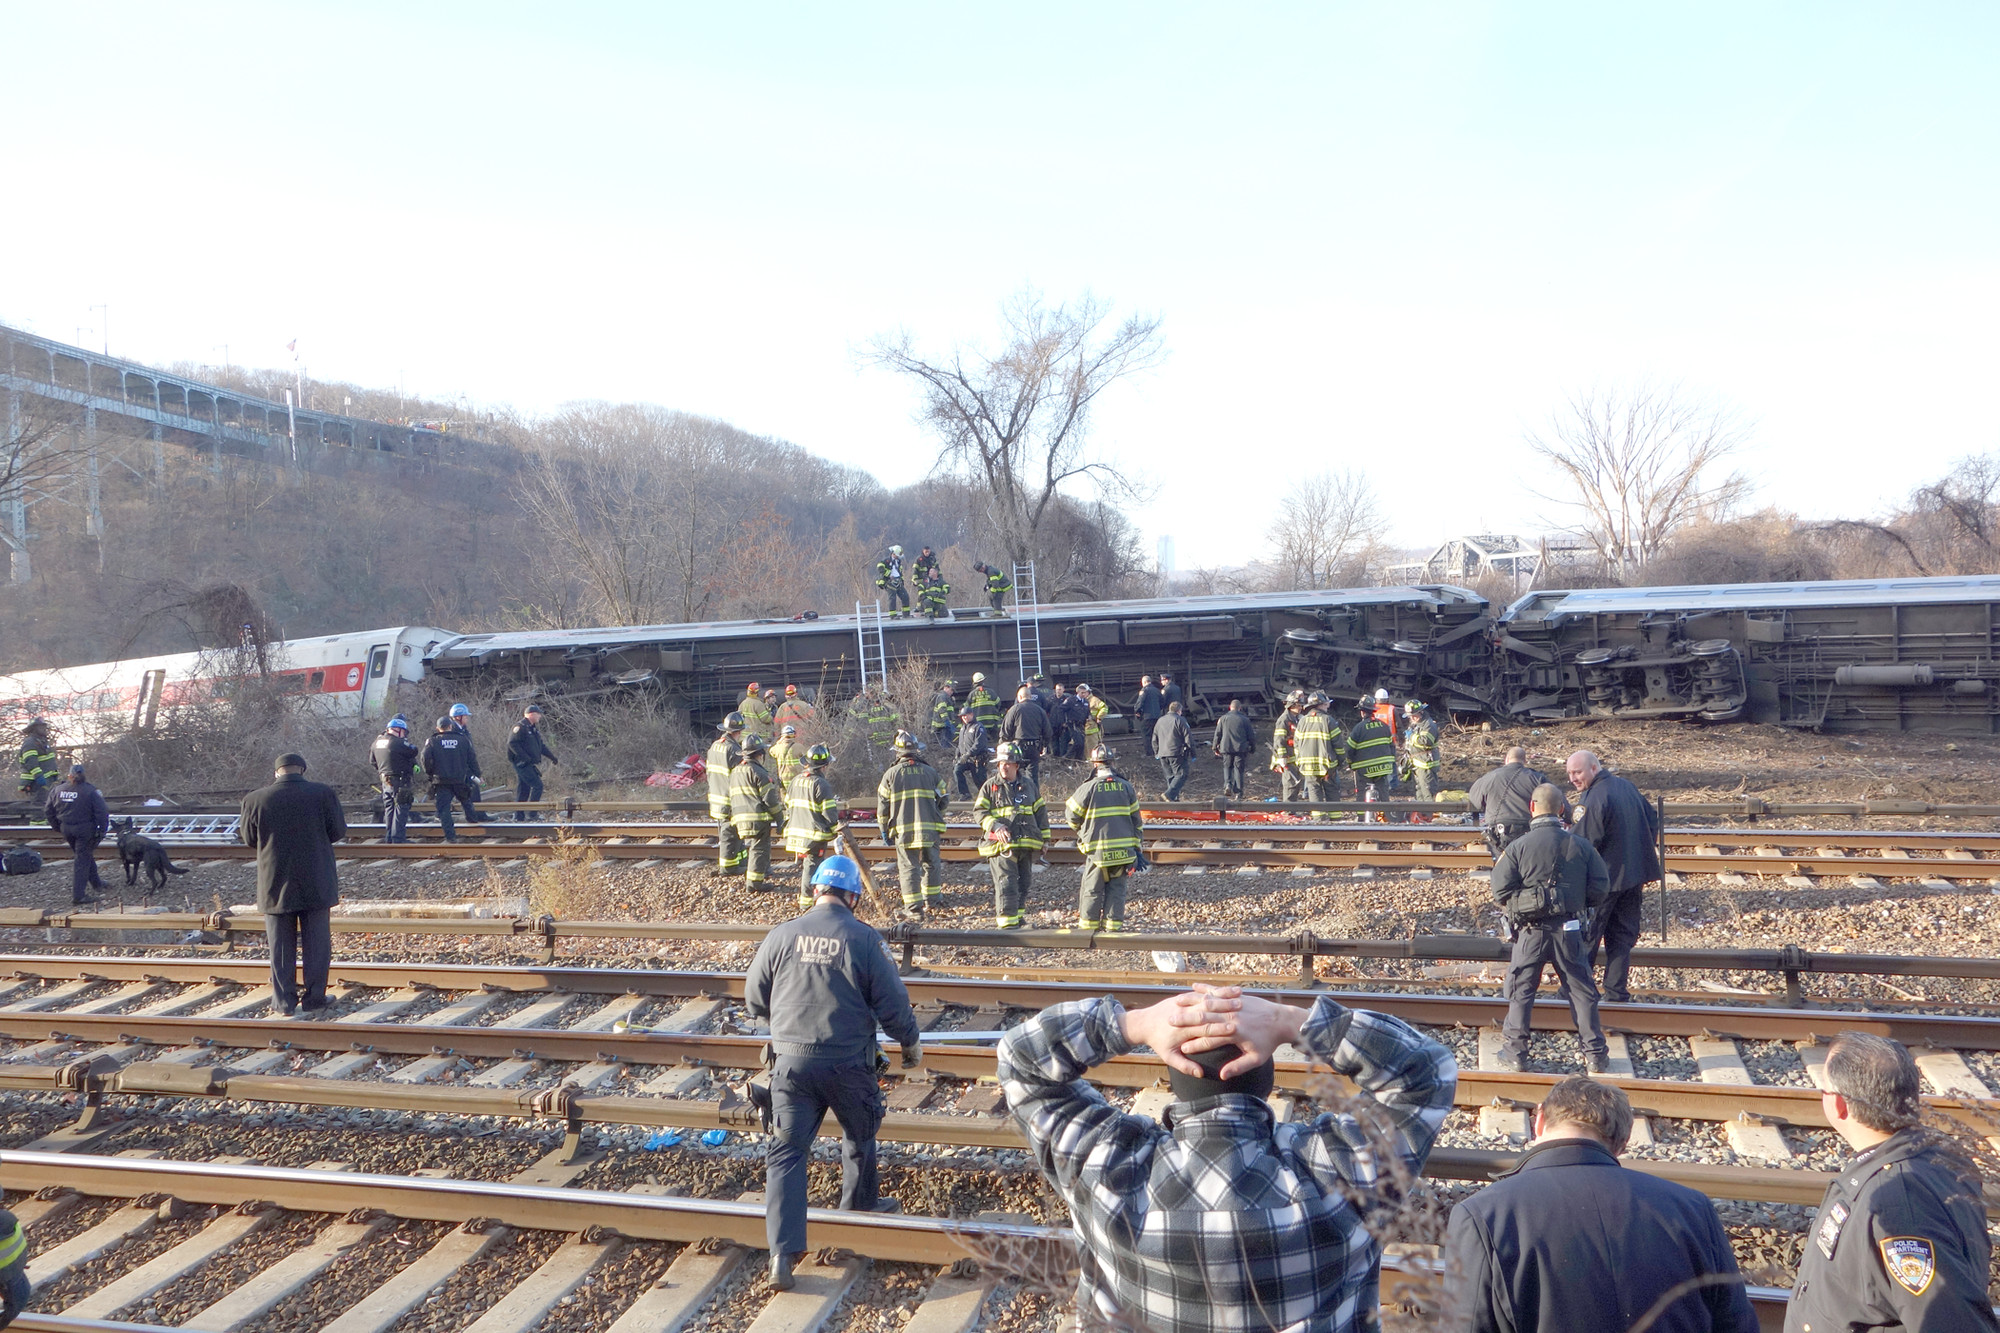 Rescue workers swarmed to the train.